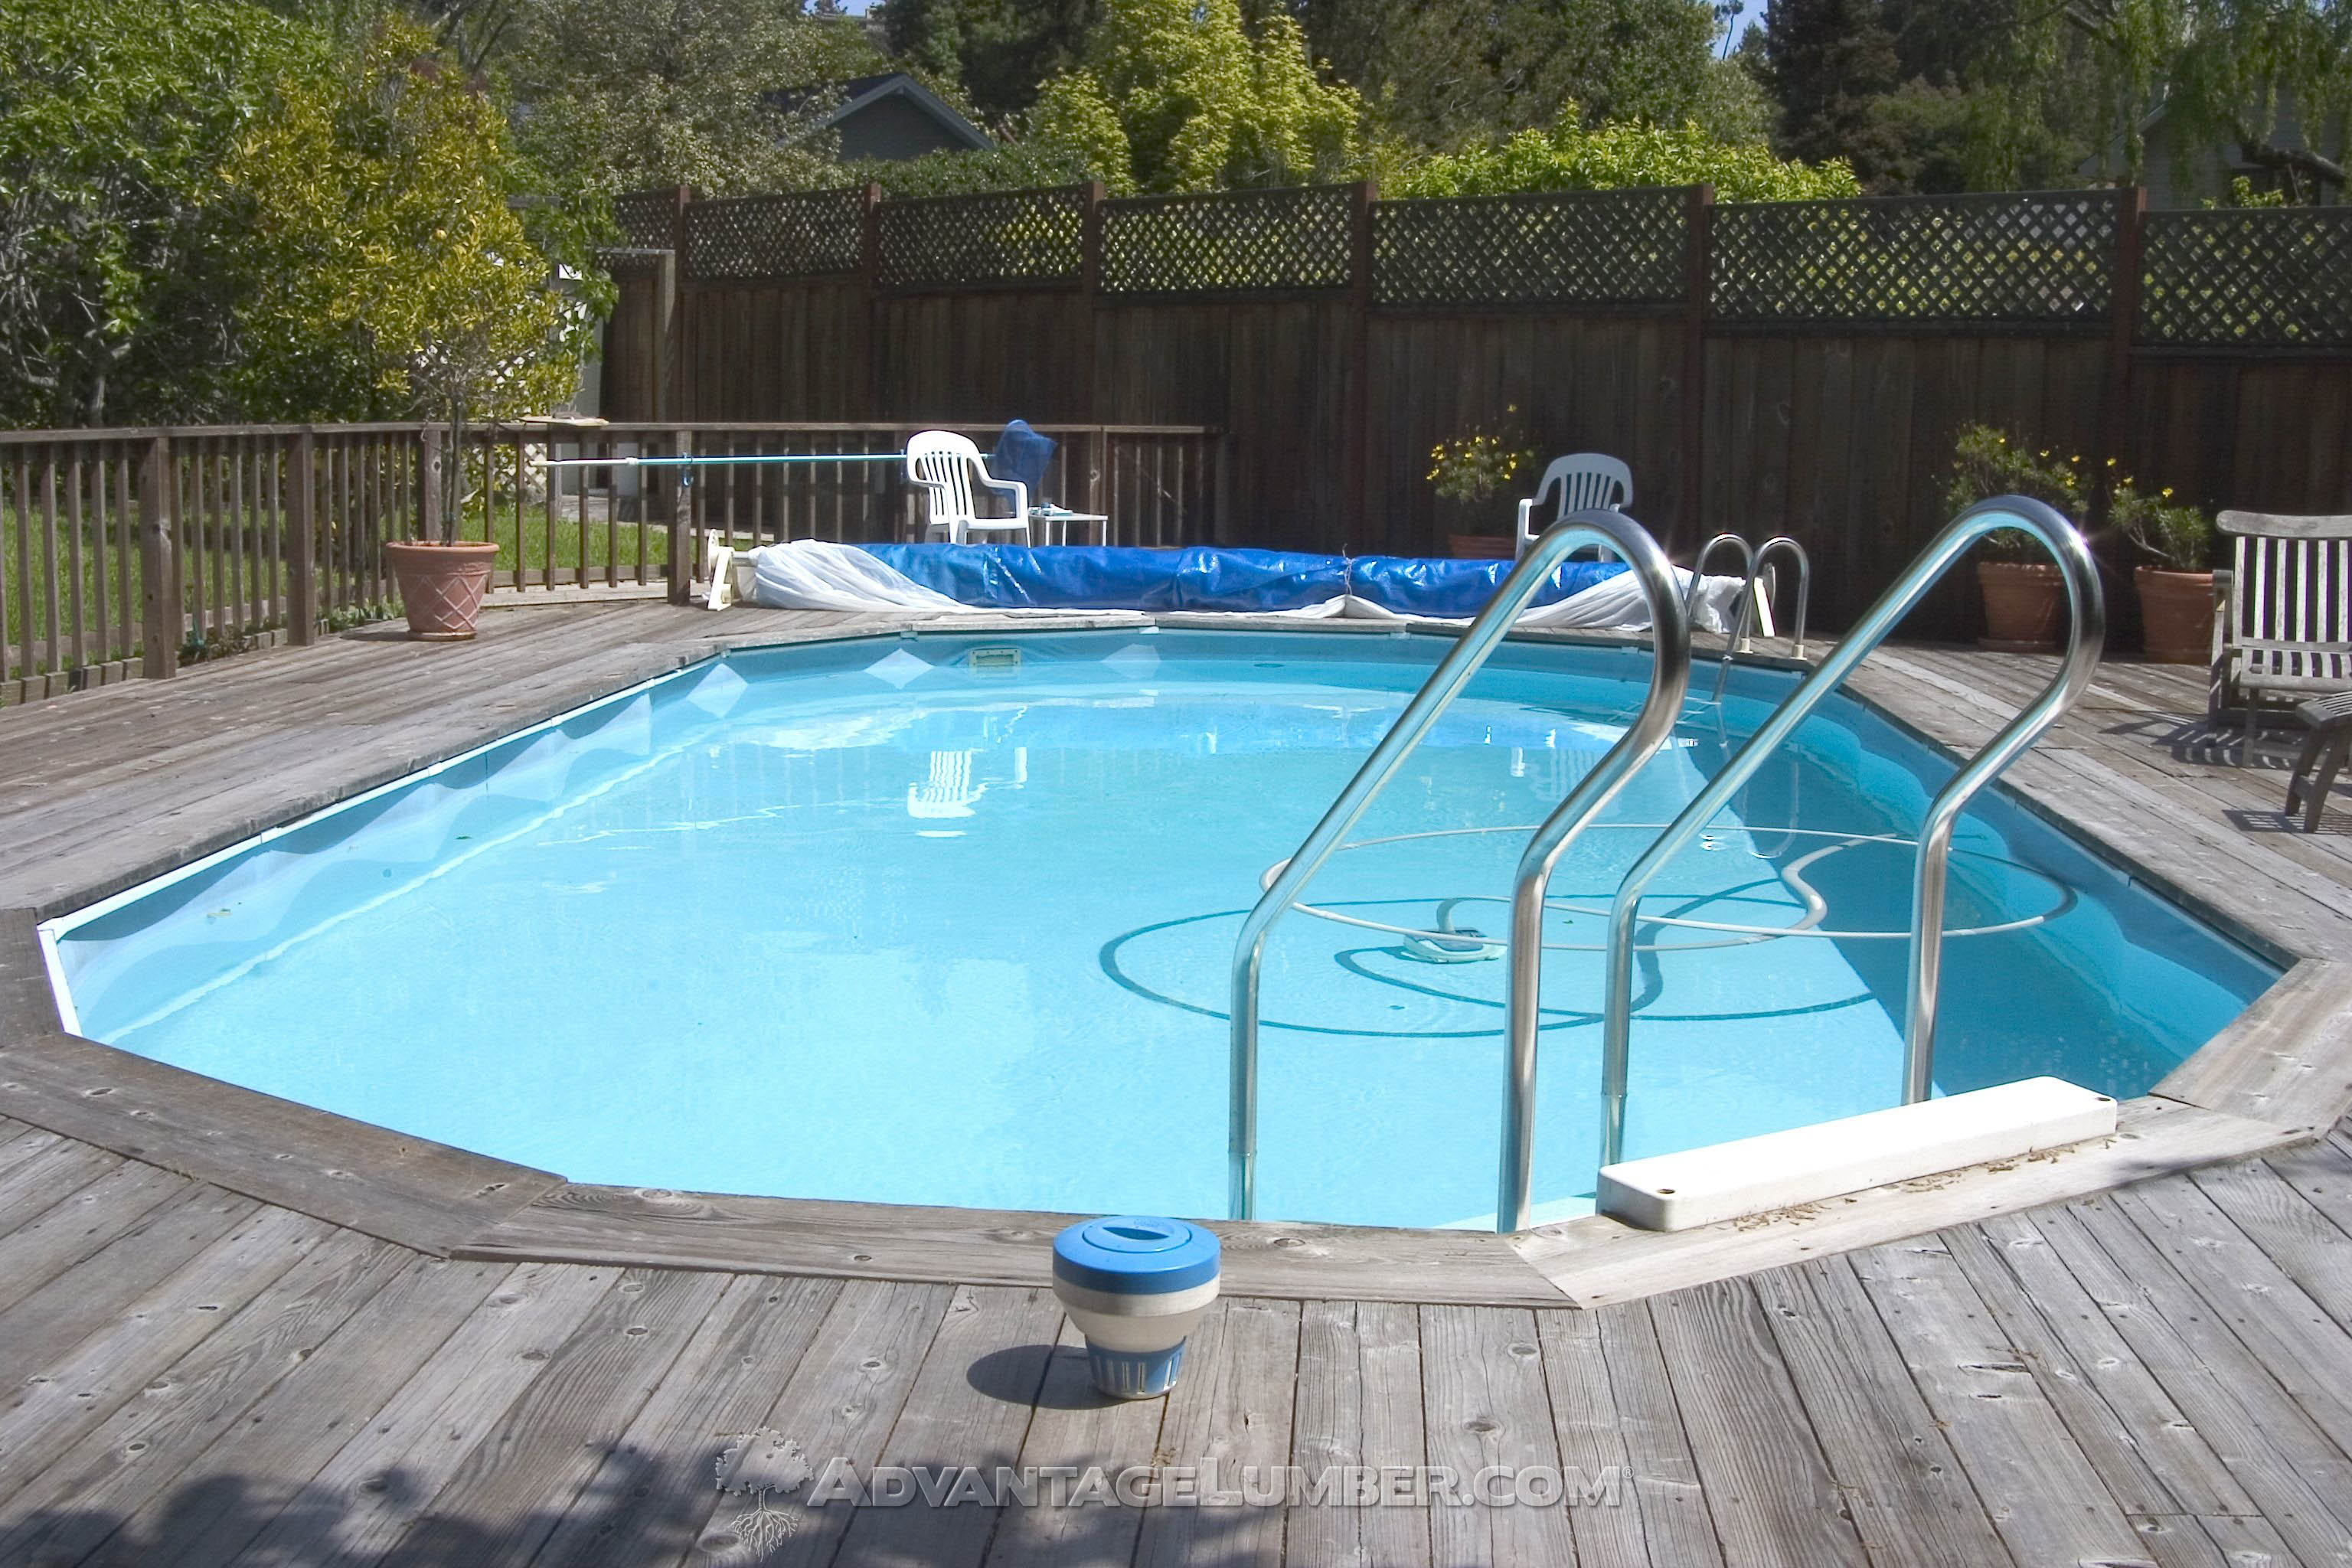 Best Decking For Above Ground Pools, What Is The Best Material For An Above Ground Pool Deck